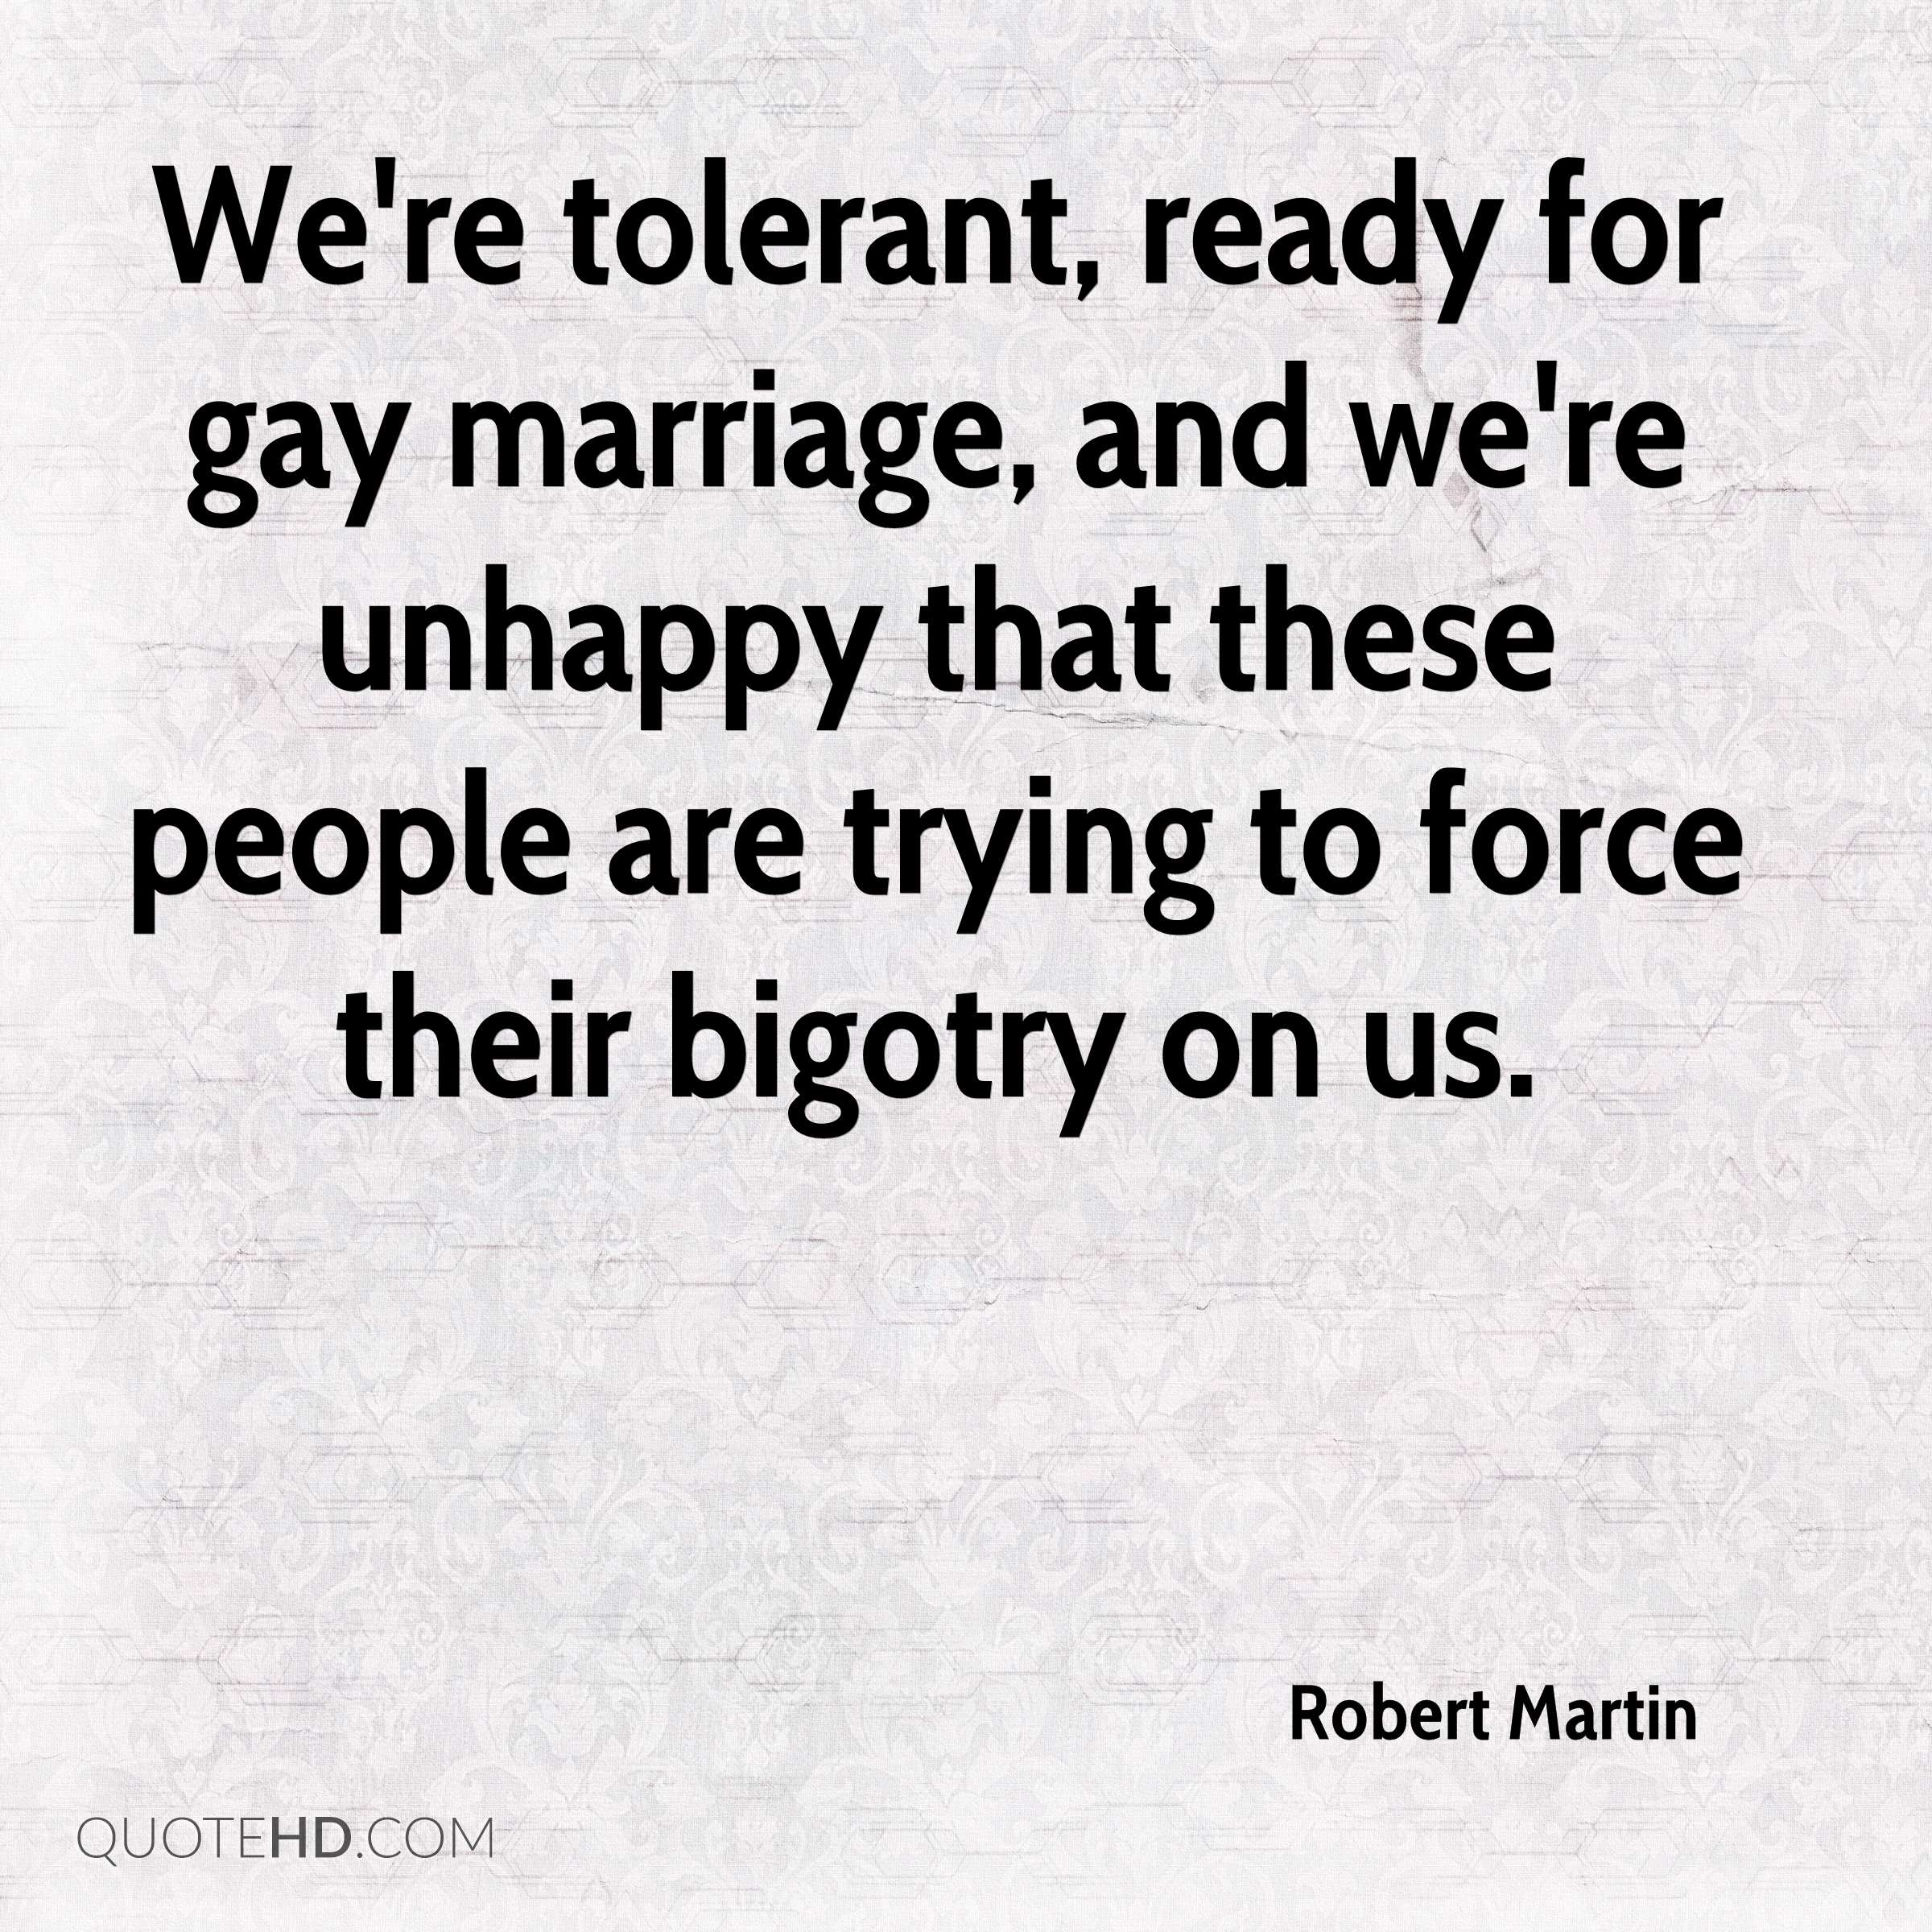 We're tolerant, ready for gay marriage, and we're unhappy that these people are trying to force their bigotry on us.